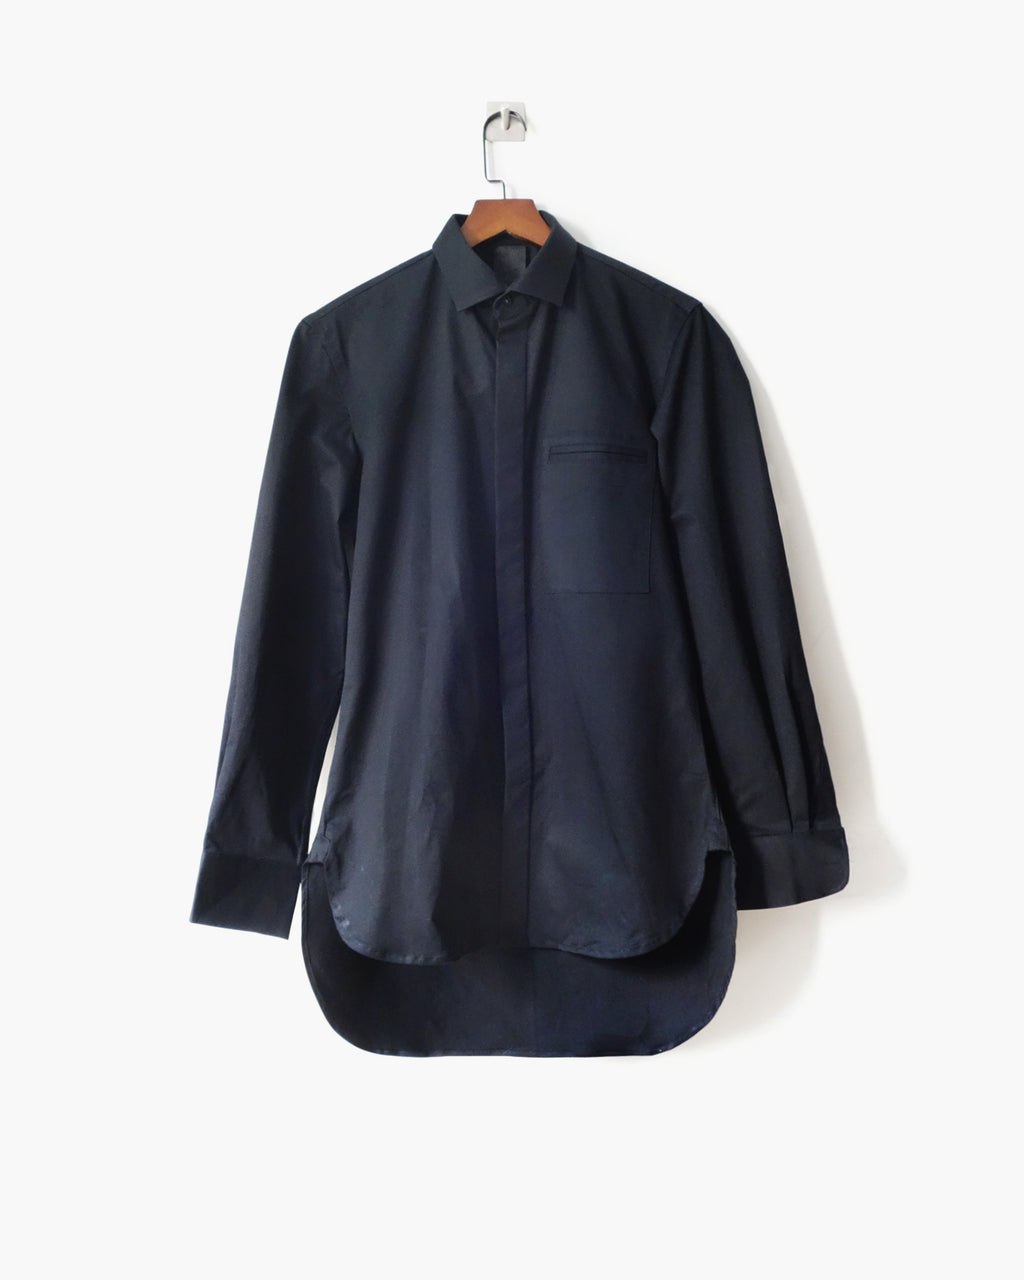 ROSEN Aalto Shirt in Heavy Cotton Twill